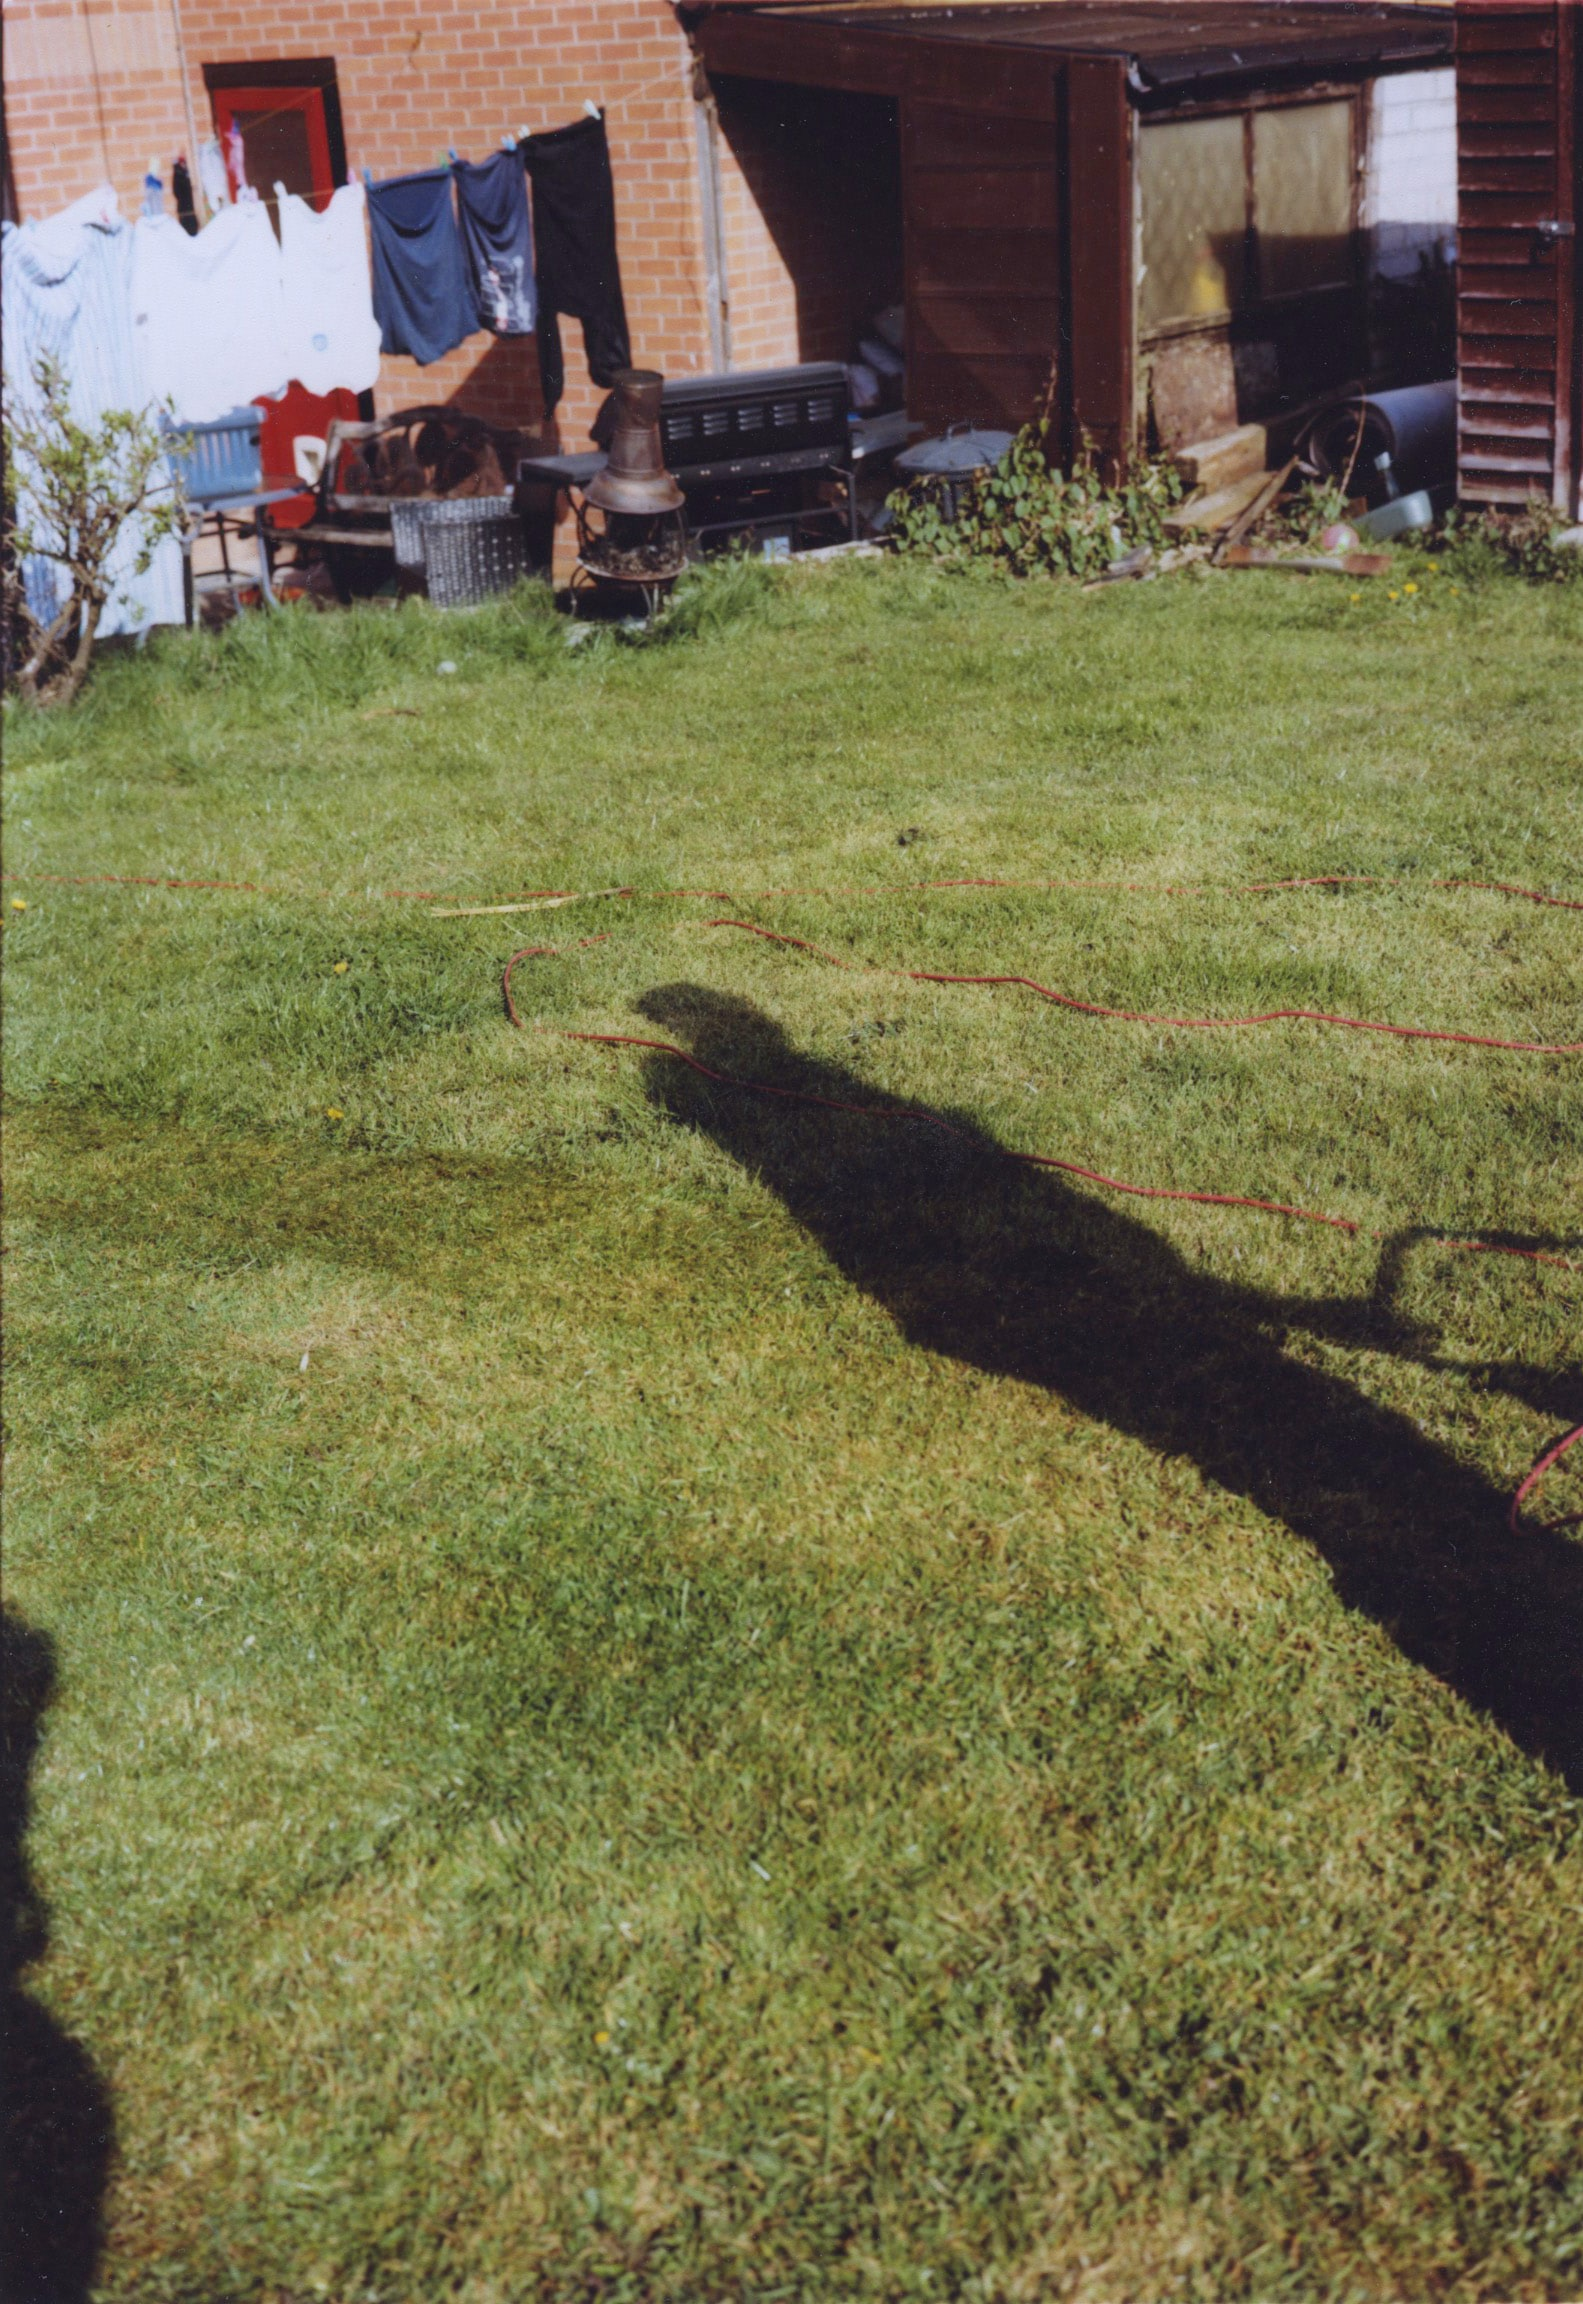 Photo of a garden with the shadow of a man mowing the lawn